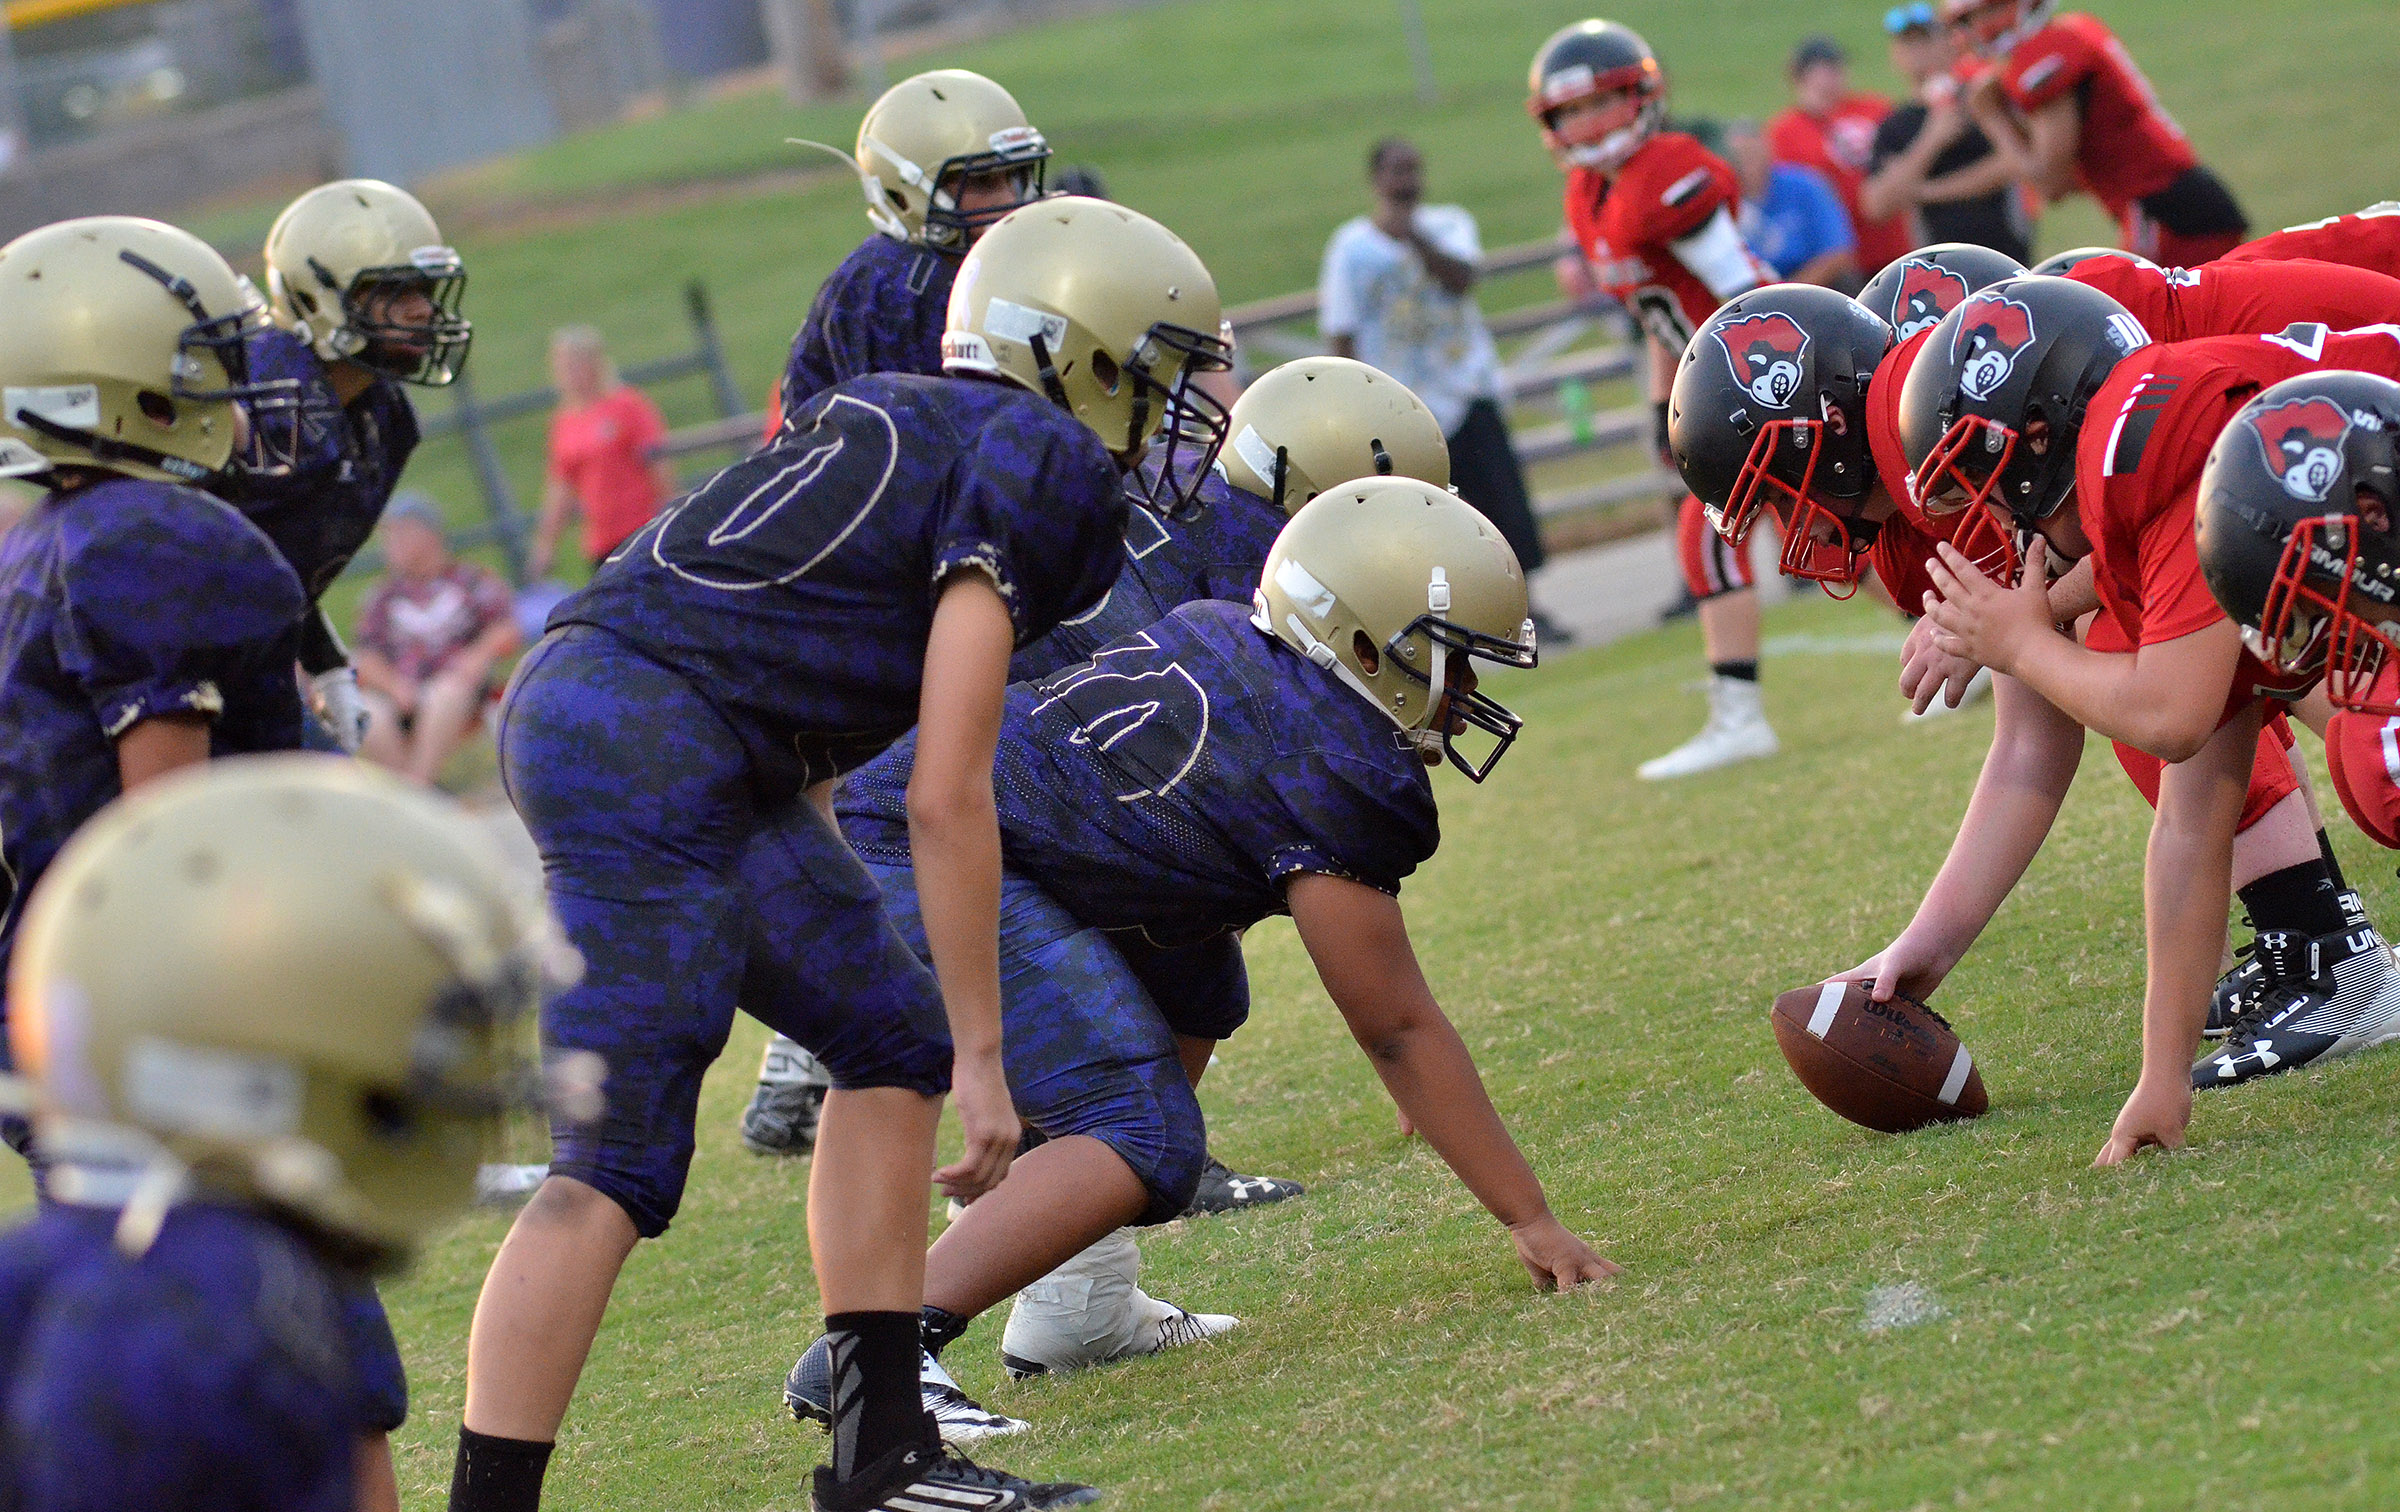 CMS defensive line players get ready to tackle.